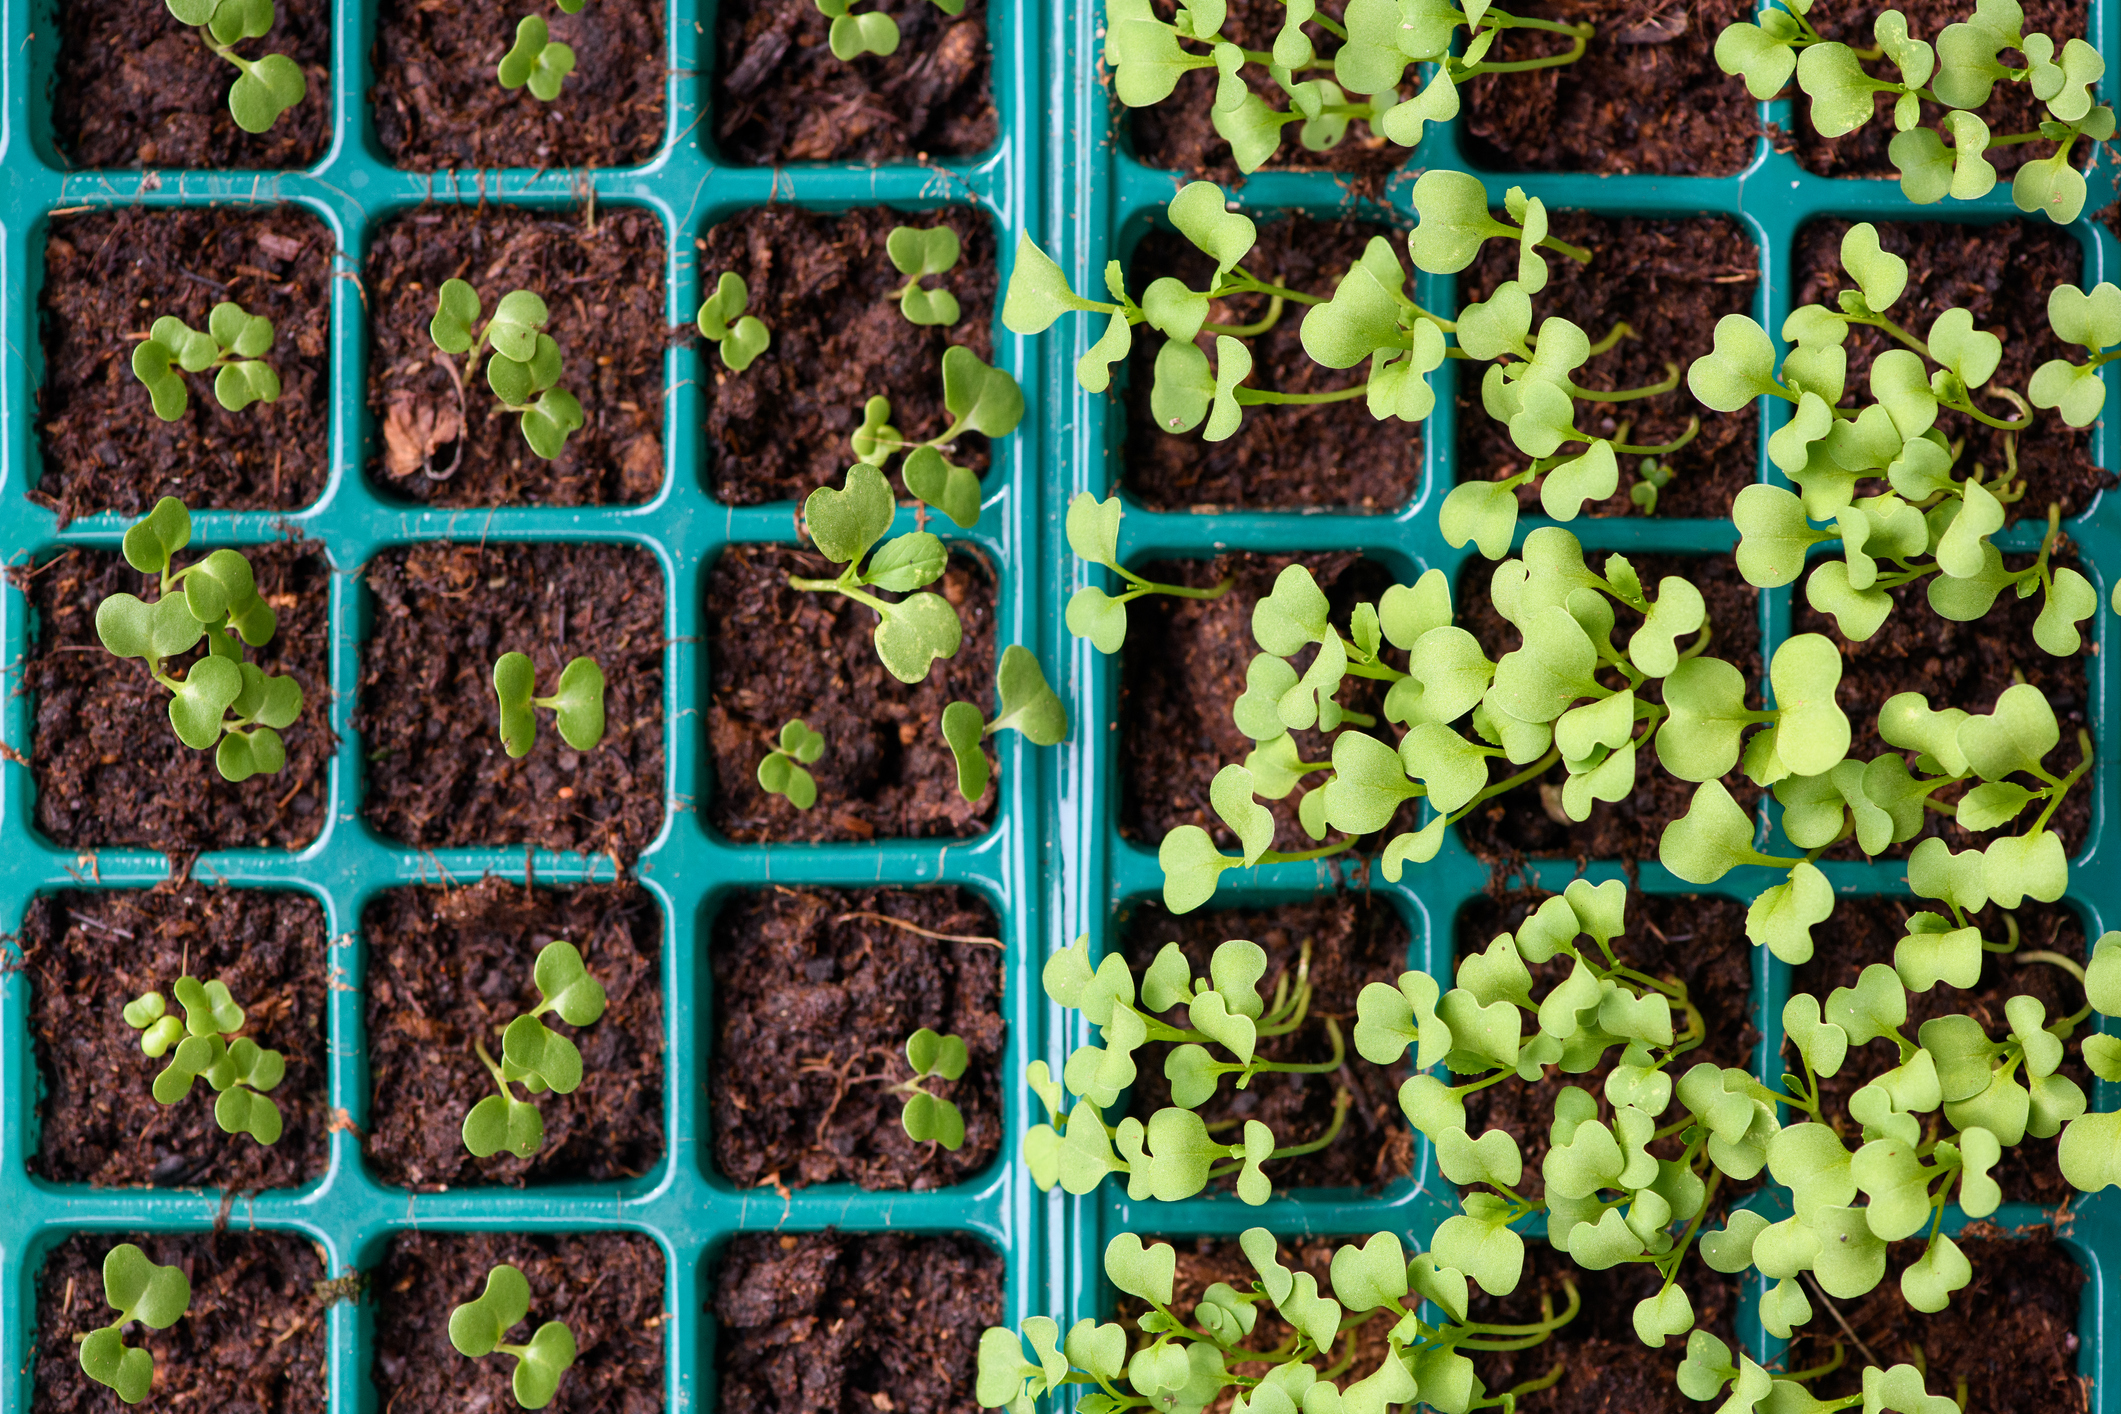 Scientists From The University Of California Plan To Grow Medicine Filled Edible Plants For People With Needle Phobia